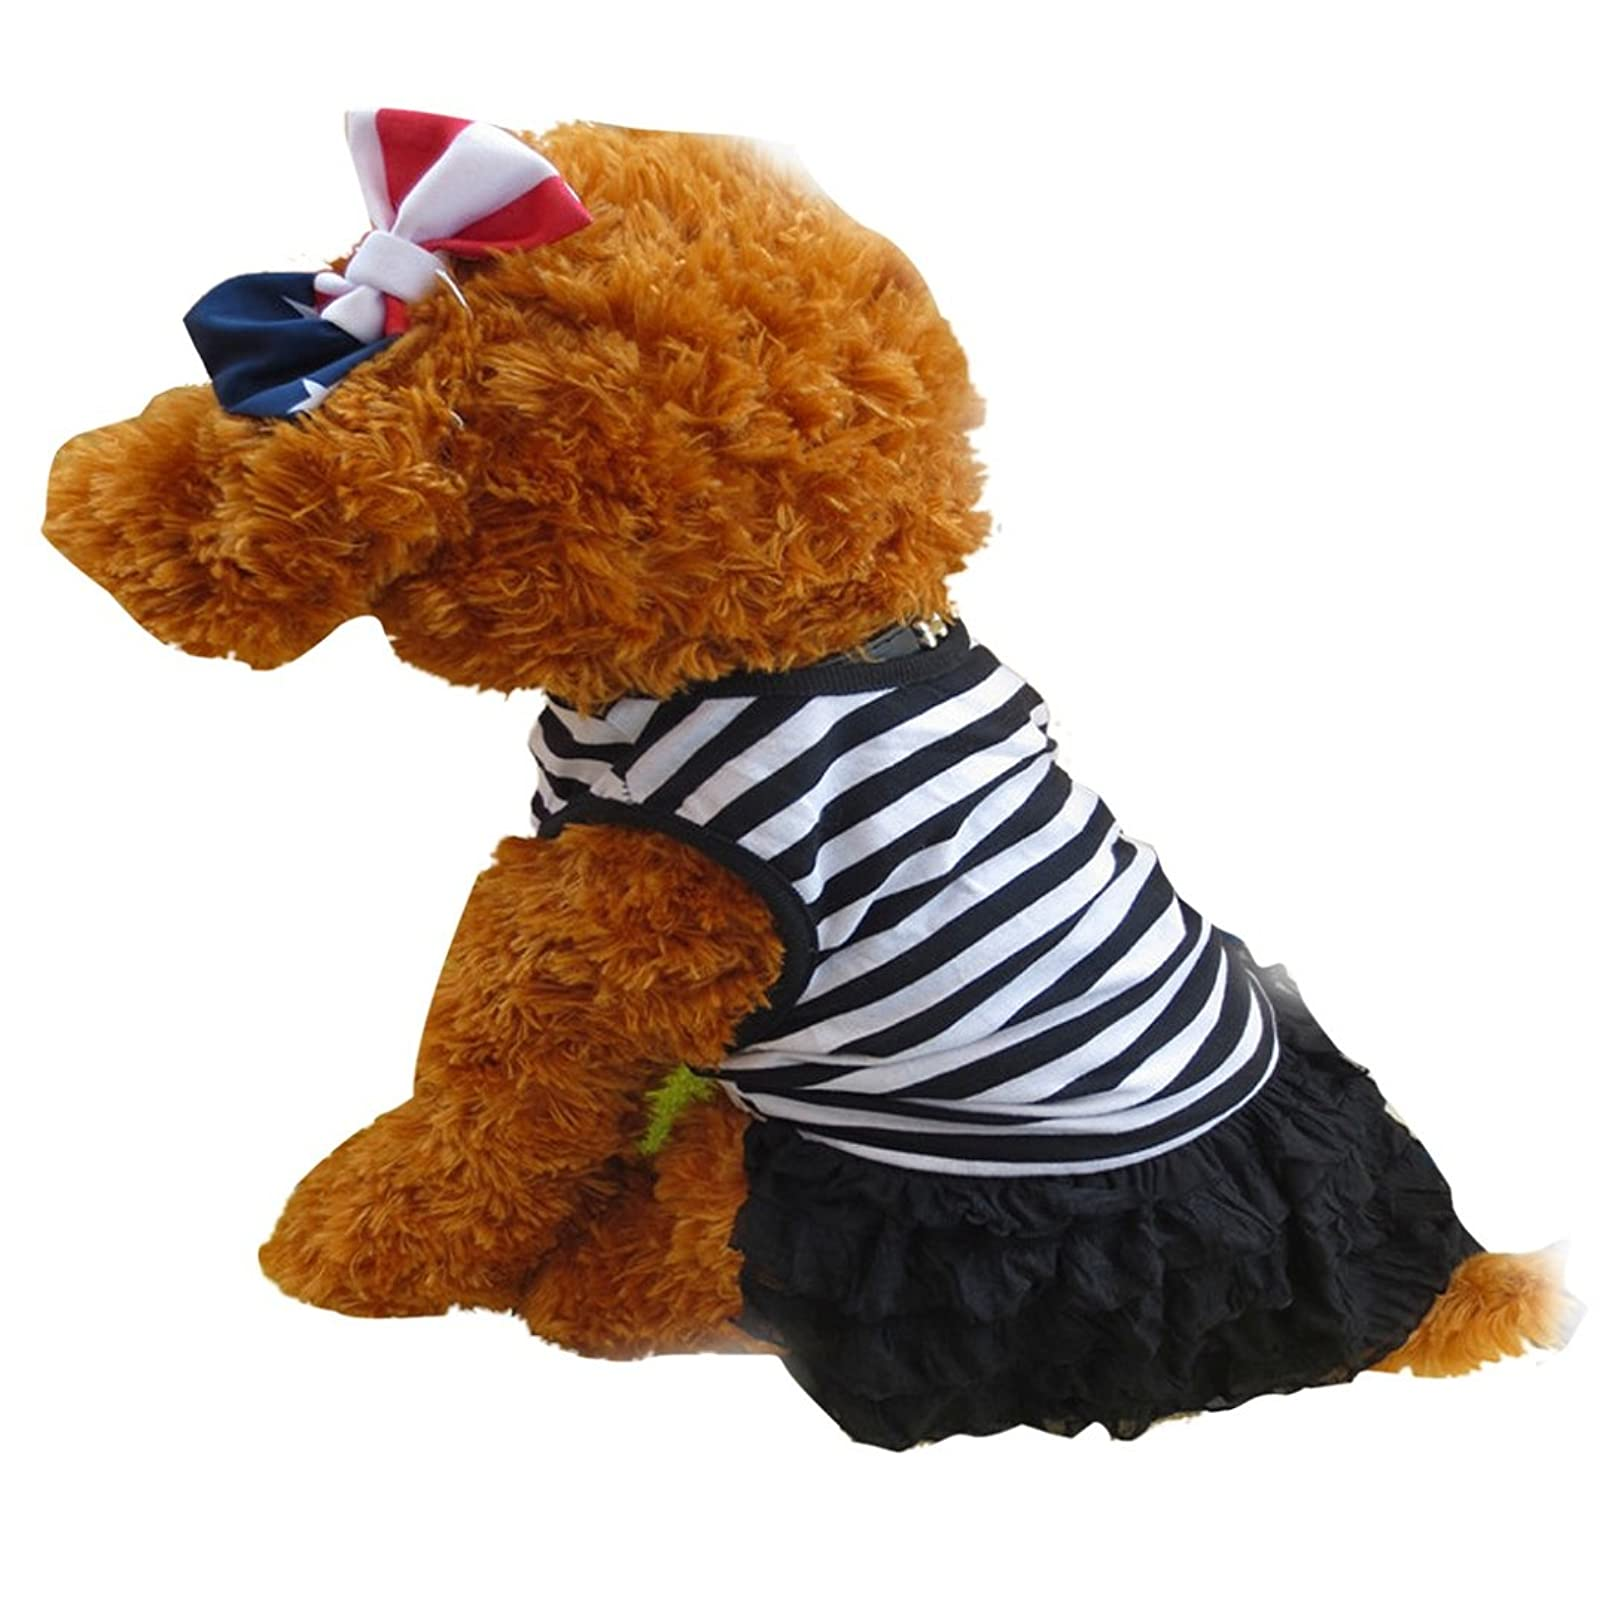 Binmer(TM)Cute Dog Clothes Pet Dog Black M - 2